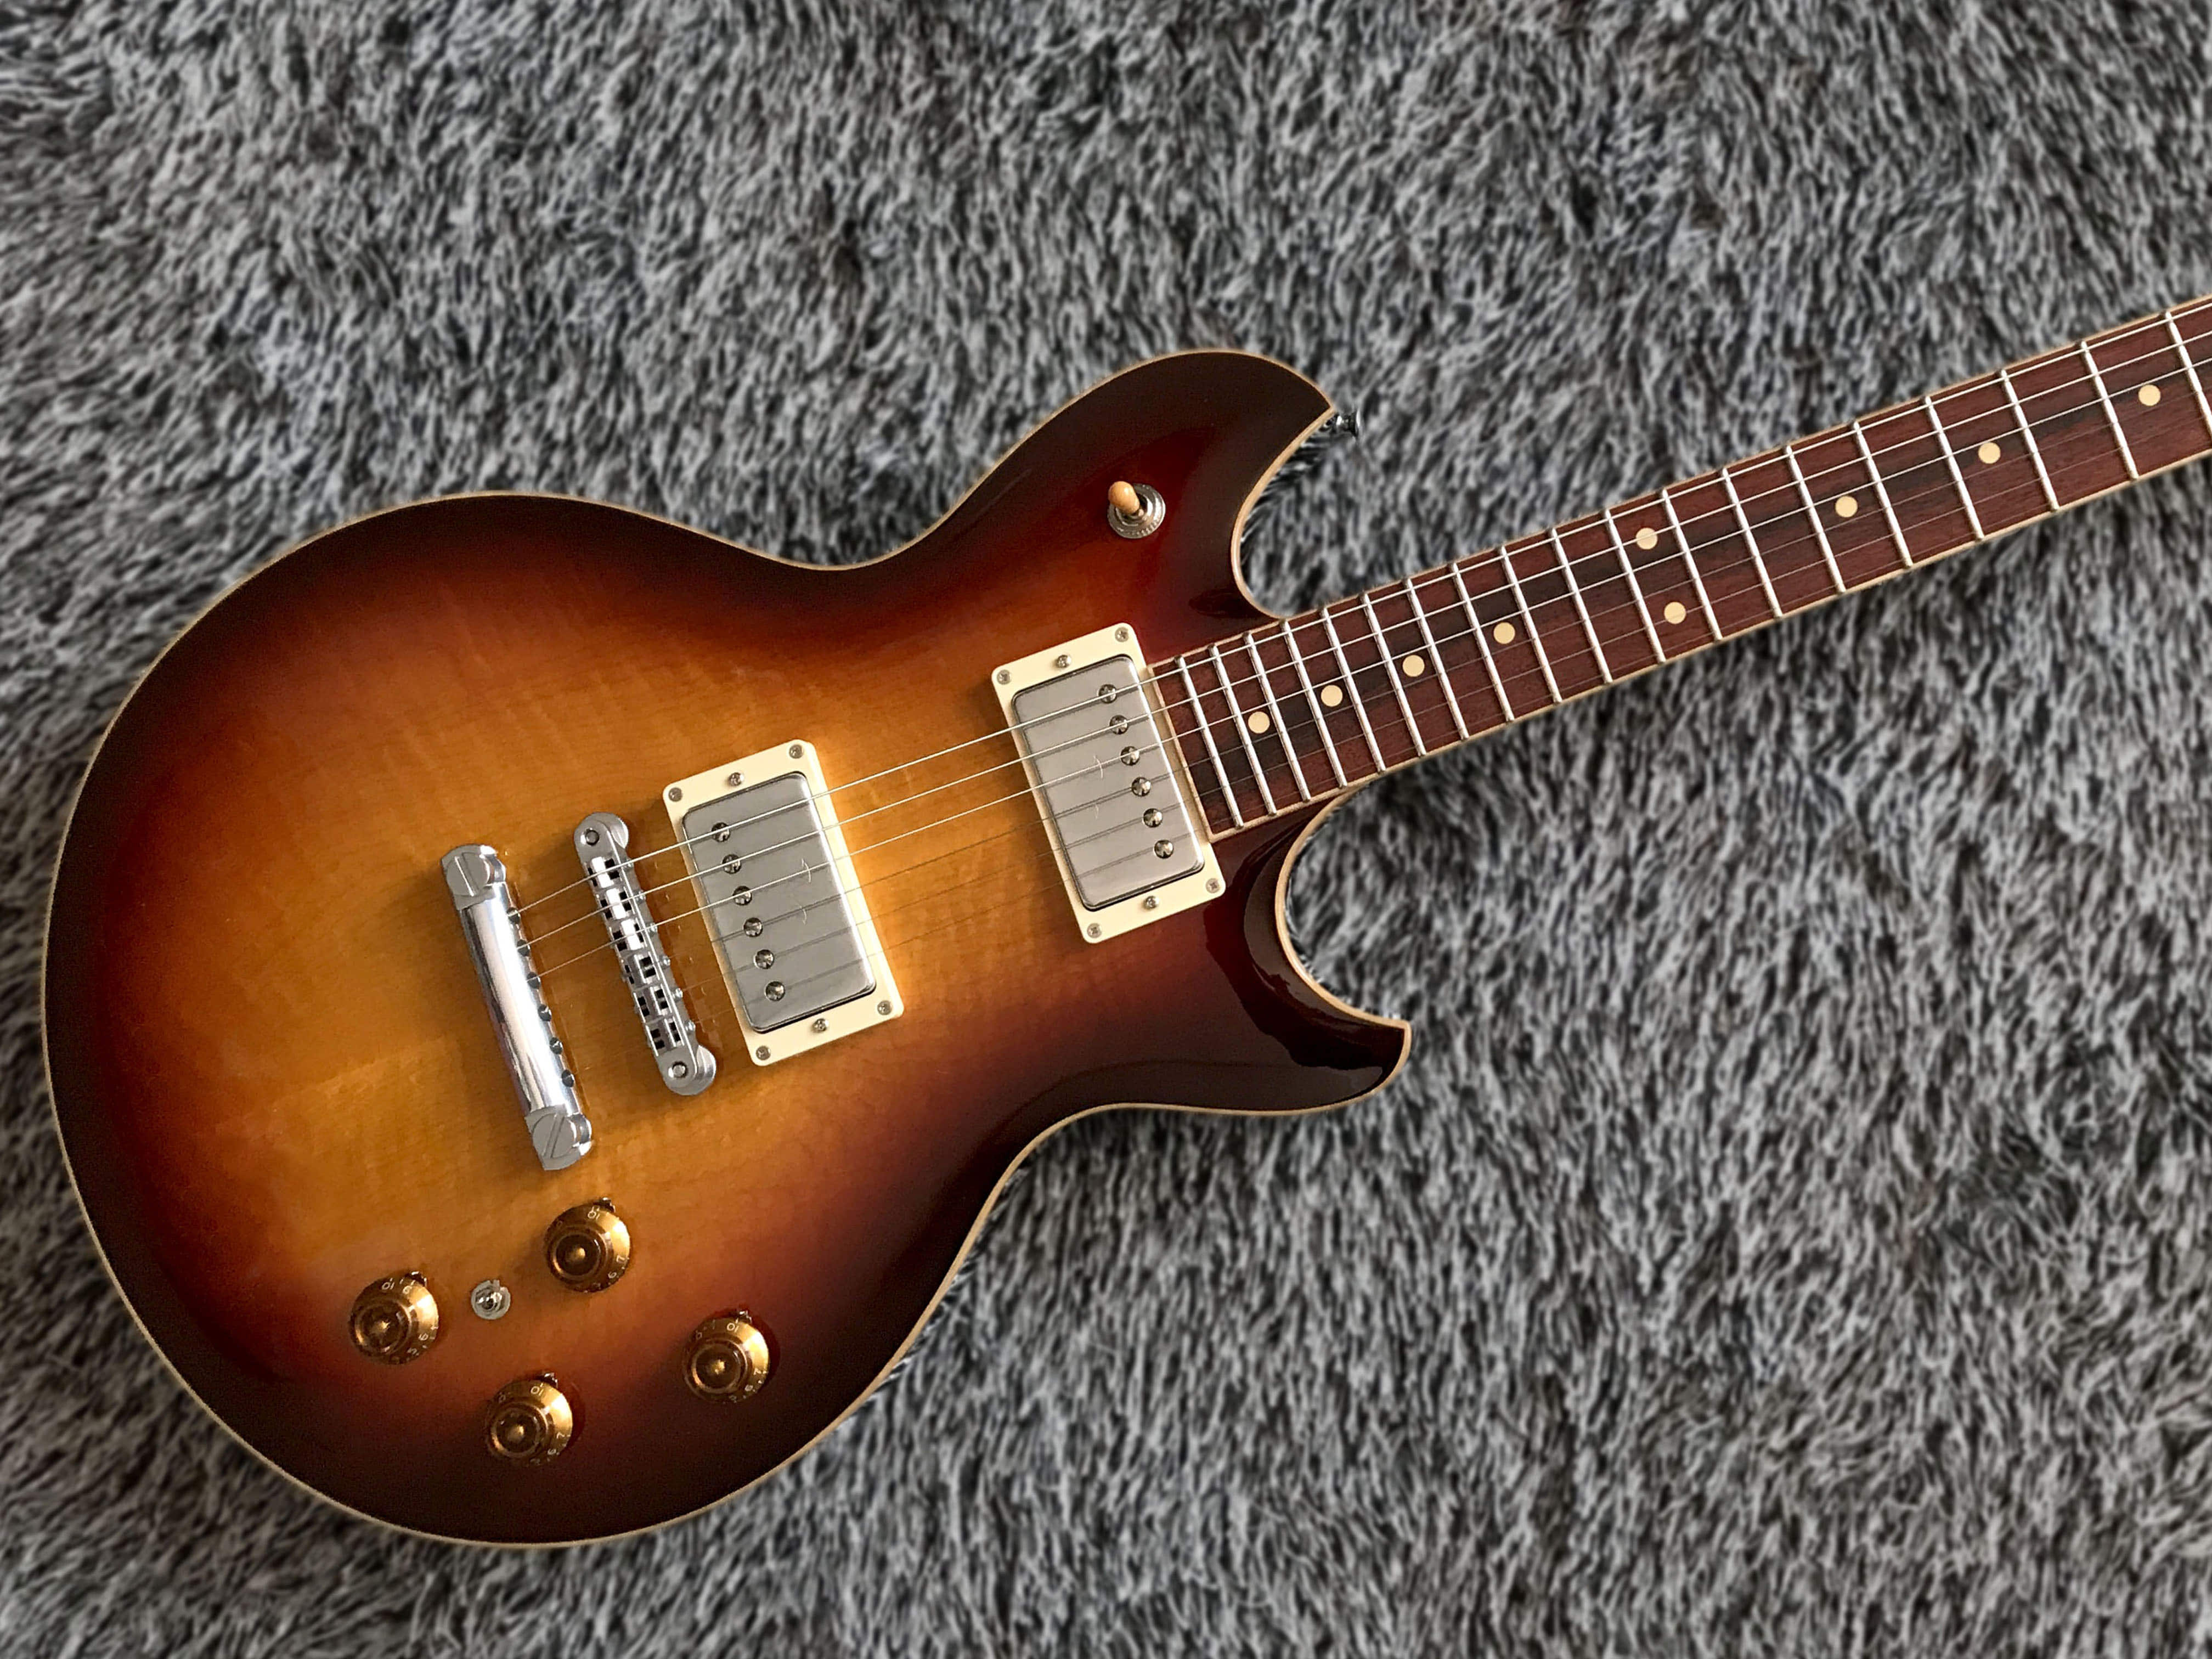 SUGI LAQC GUITAR (Vintage Sunburst Color)